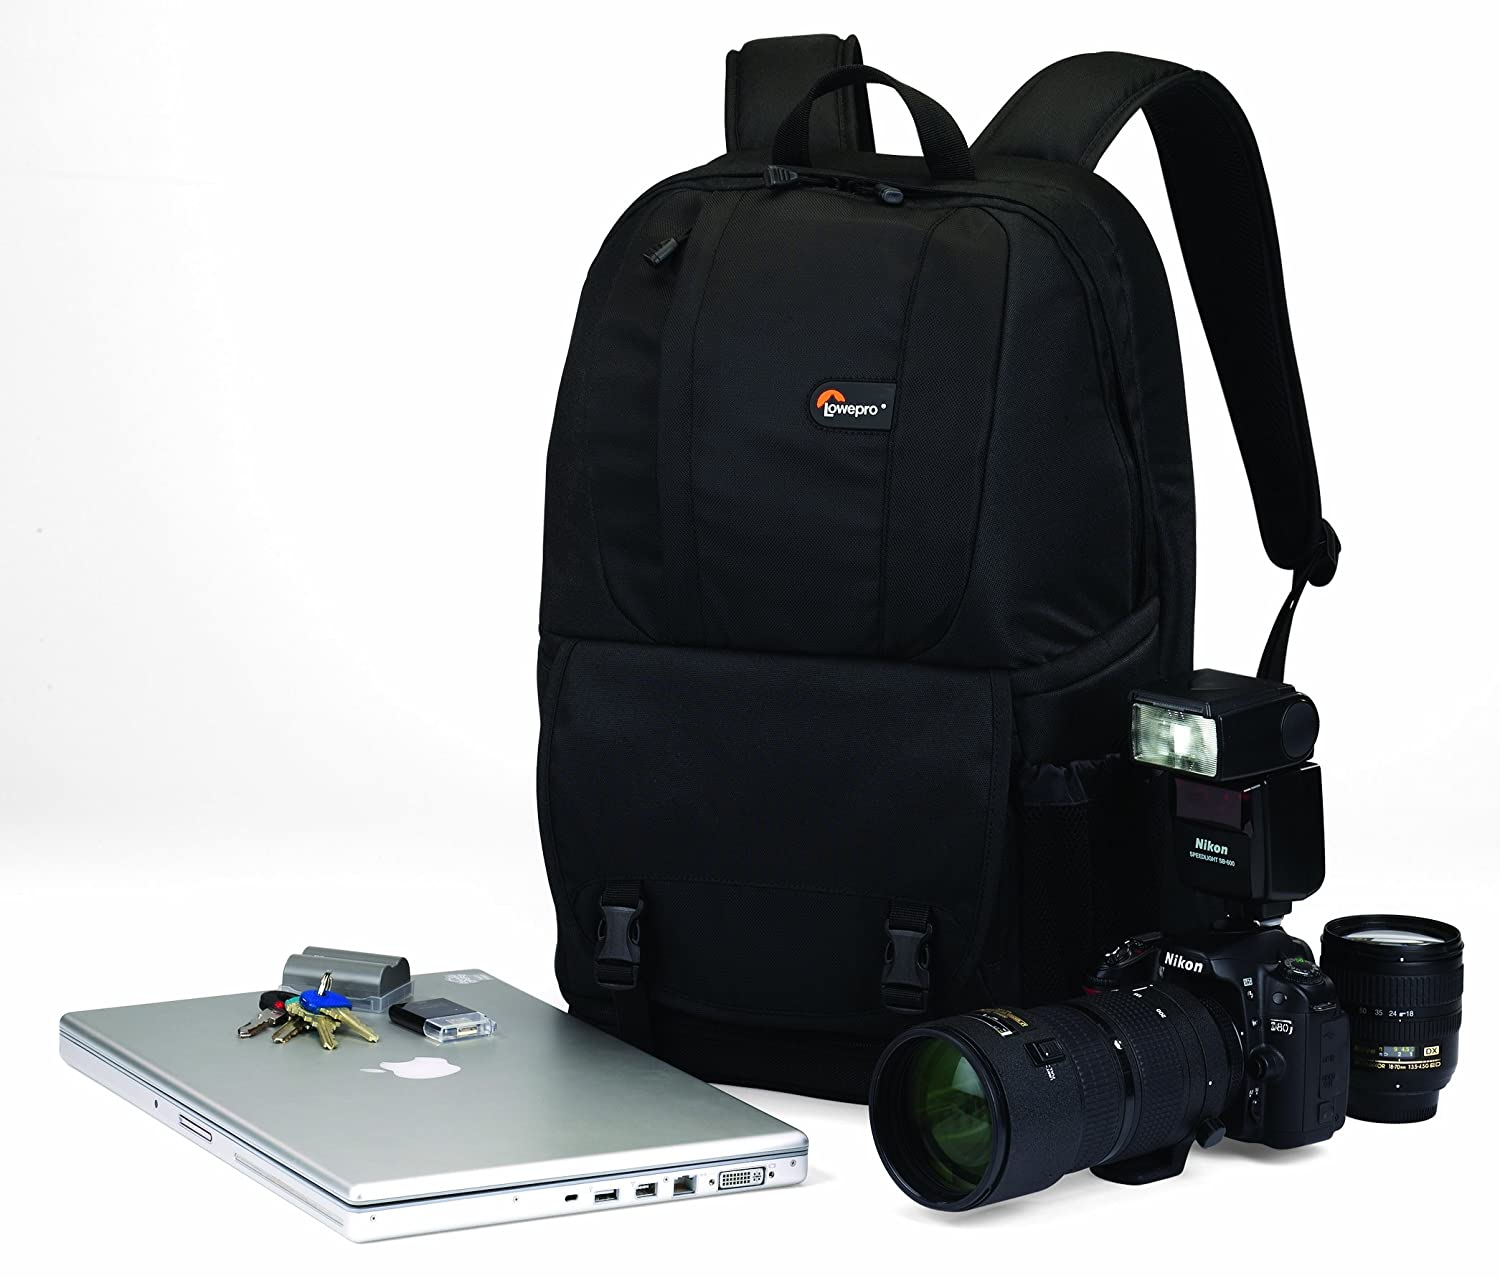 Amazon.com : Lowepro Fastpack 250 DSLR Camera Backpack ...